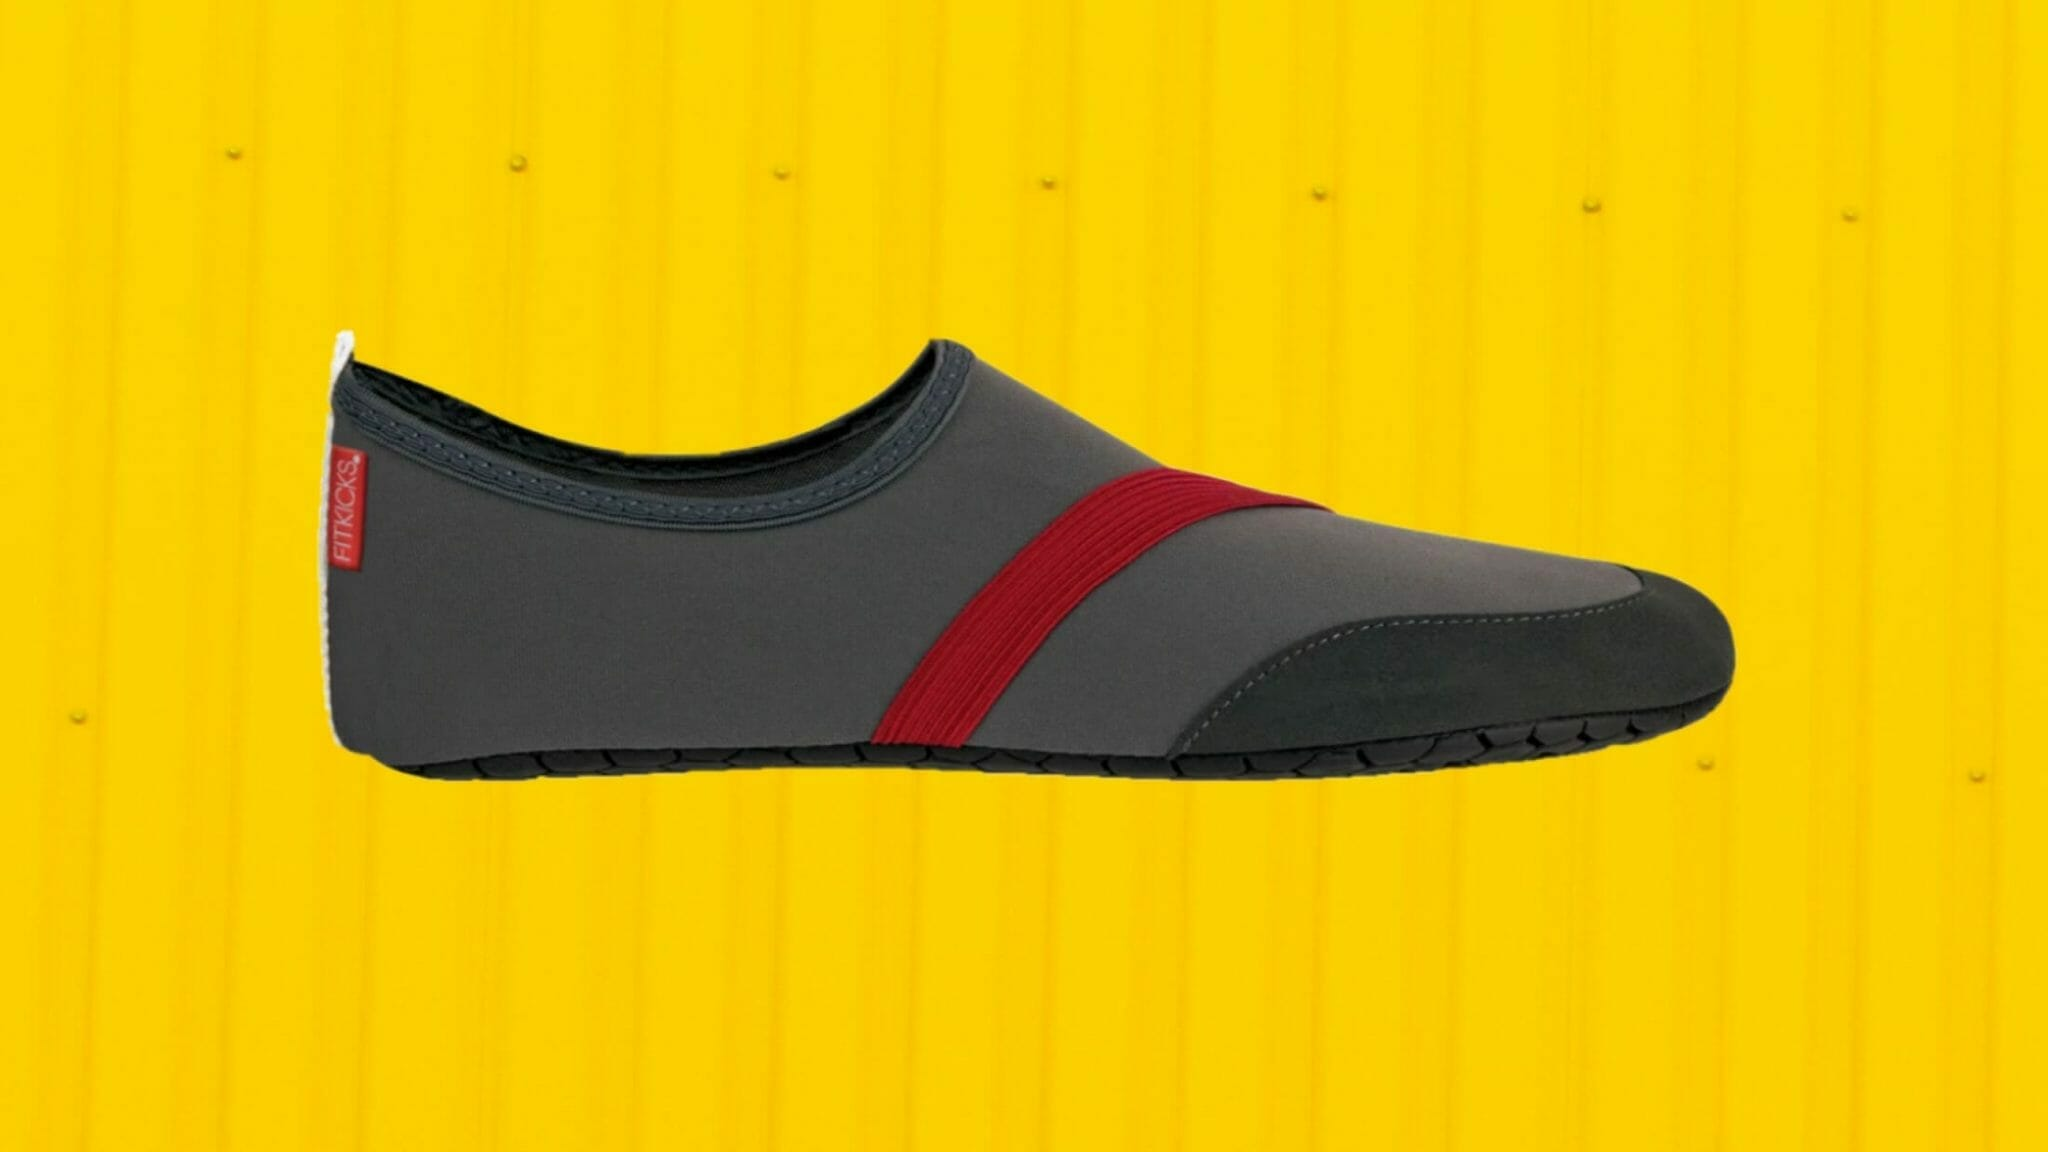 FitKicks Active mens shoes in grey with a red stripe.